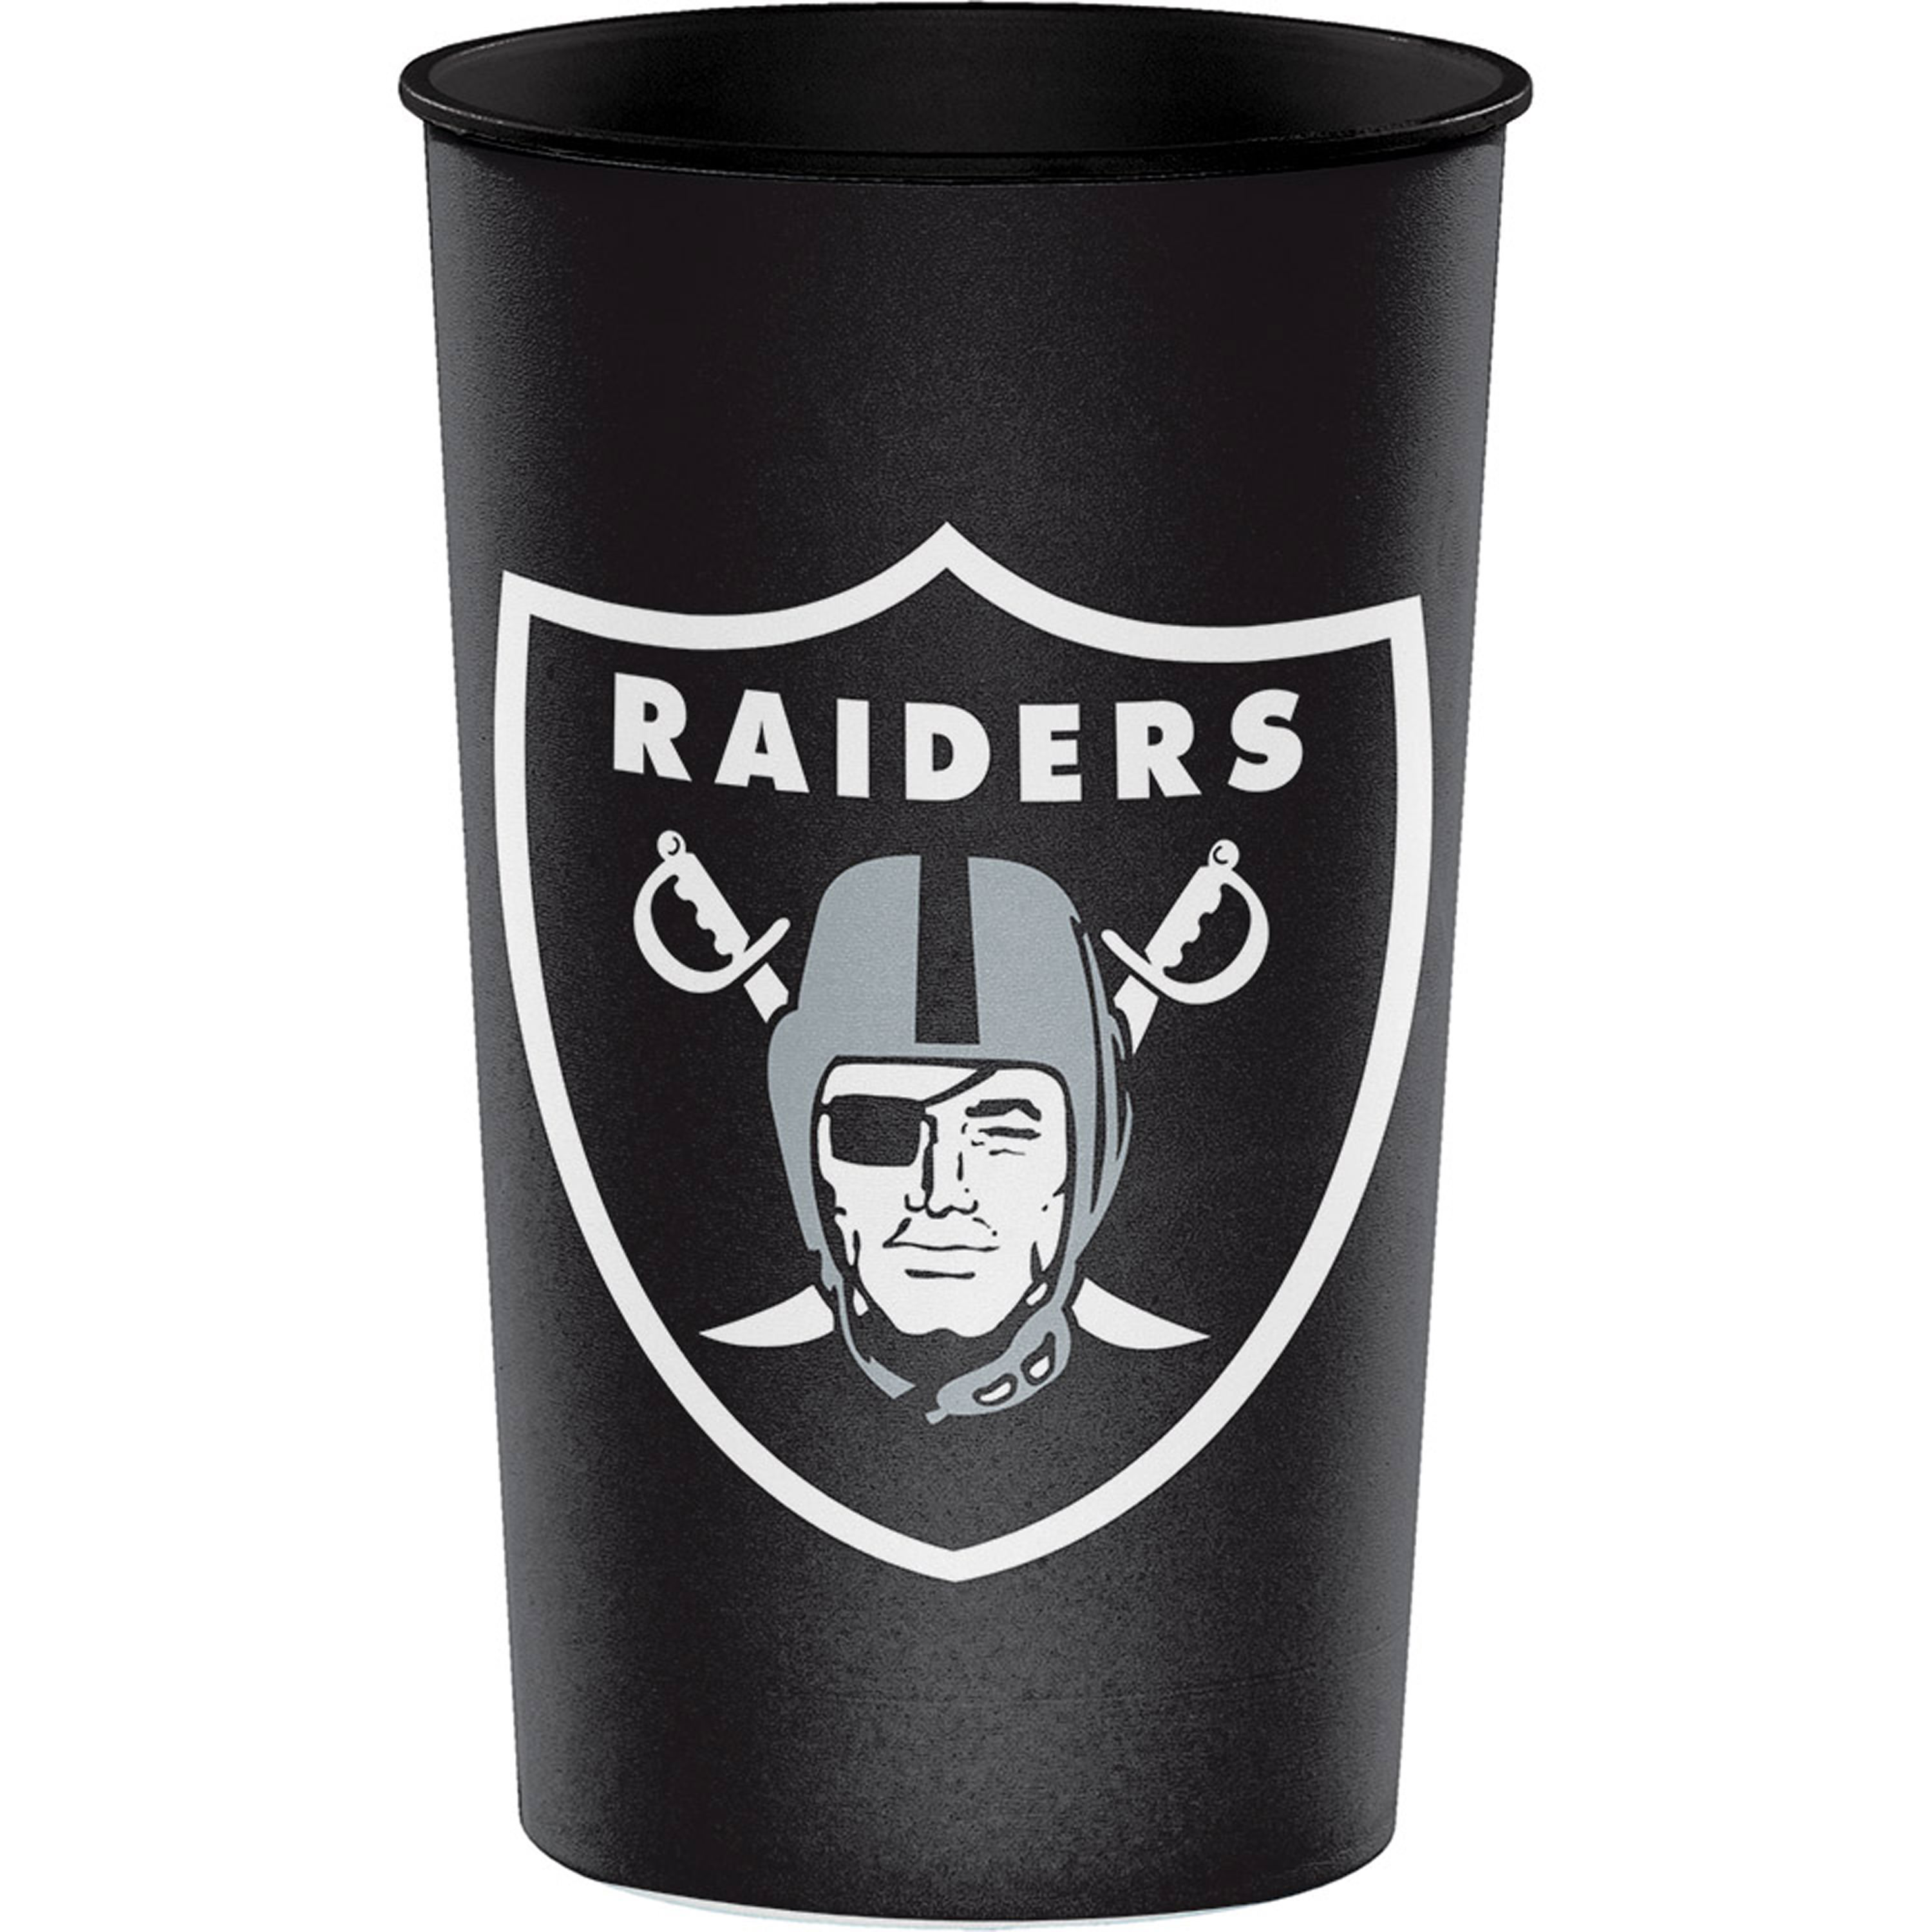 Nfl Oakland Raiders Souvenir Cups, 8 count